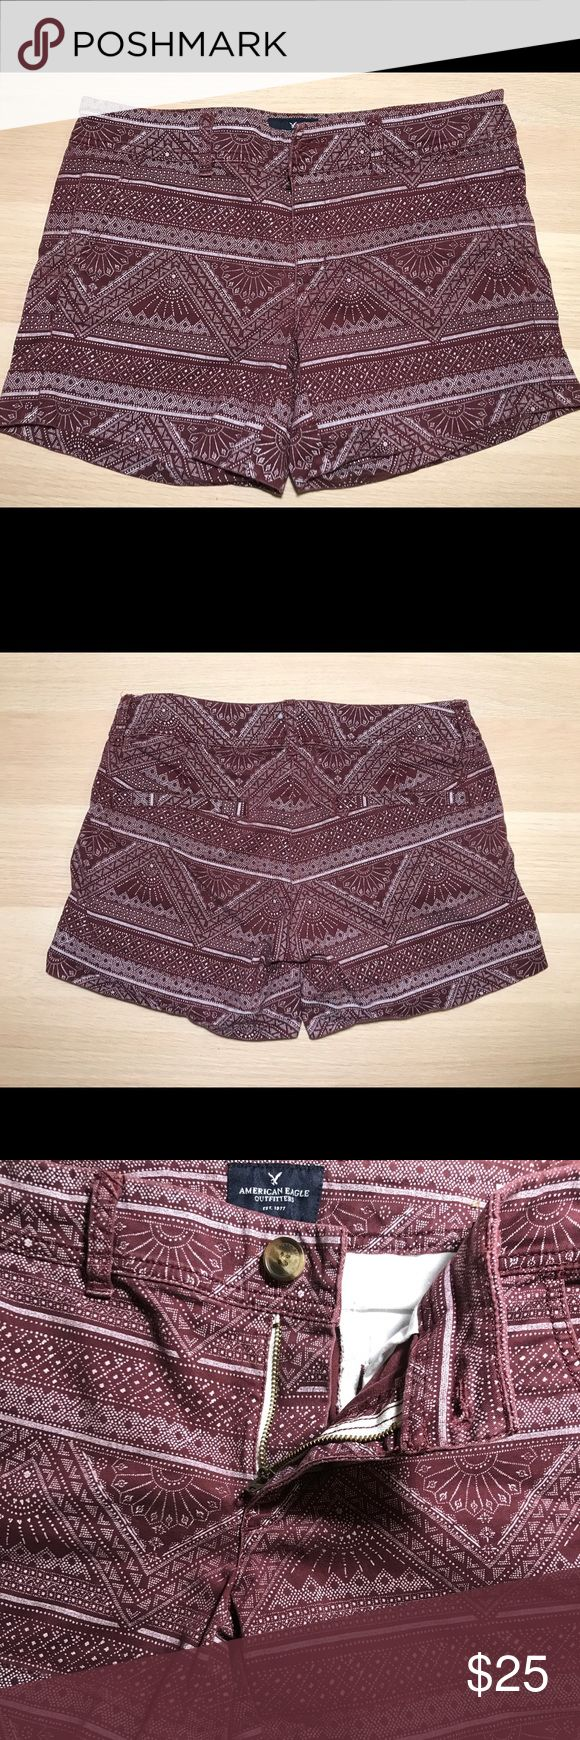 American Eagle Midi Stretch Maroon Shorts SIZE 6  Great Condition  Worn a handle of times - no frays, tears, stains, or marks. American Eagle Outfitters Shorts